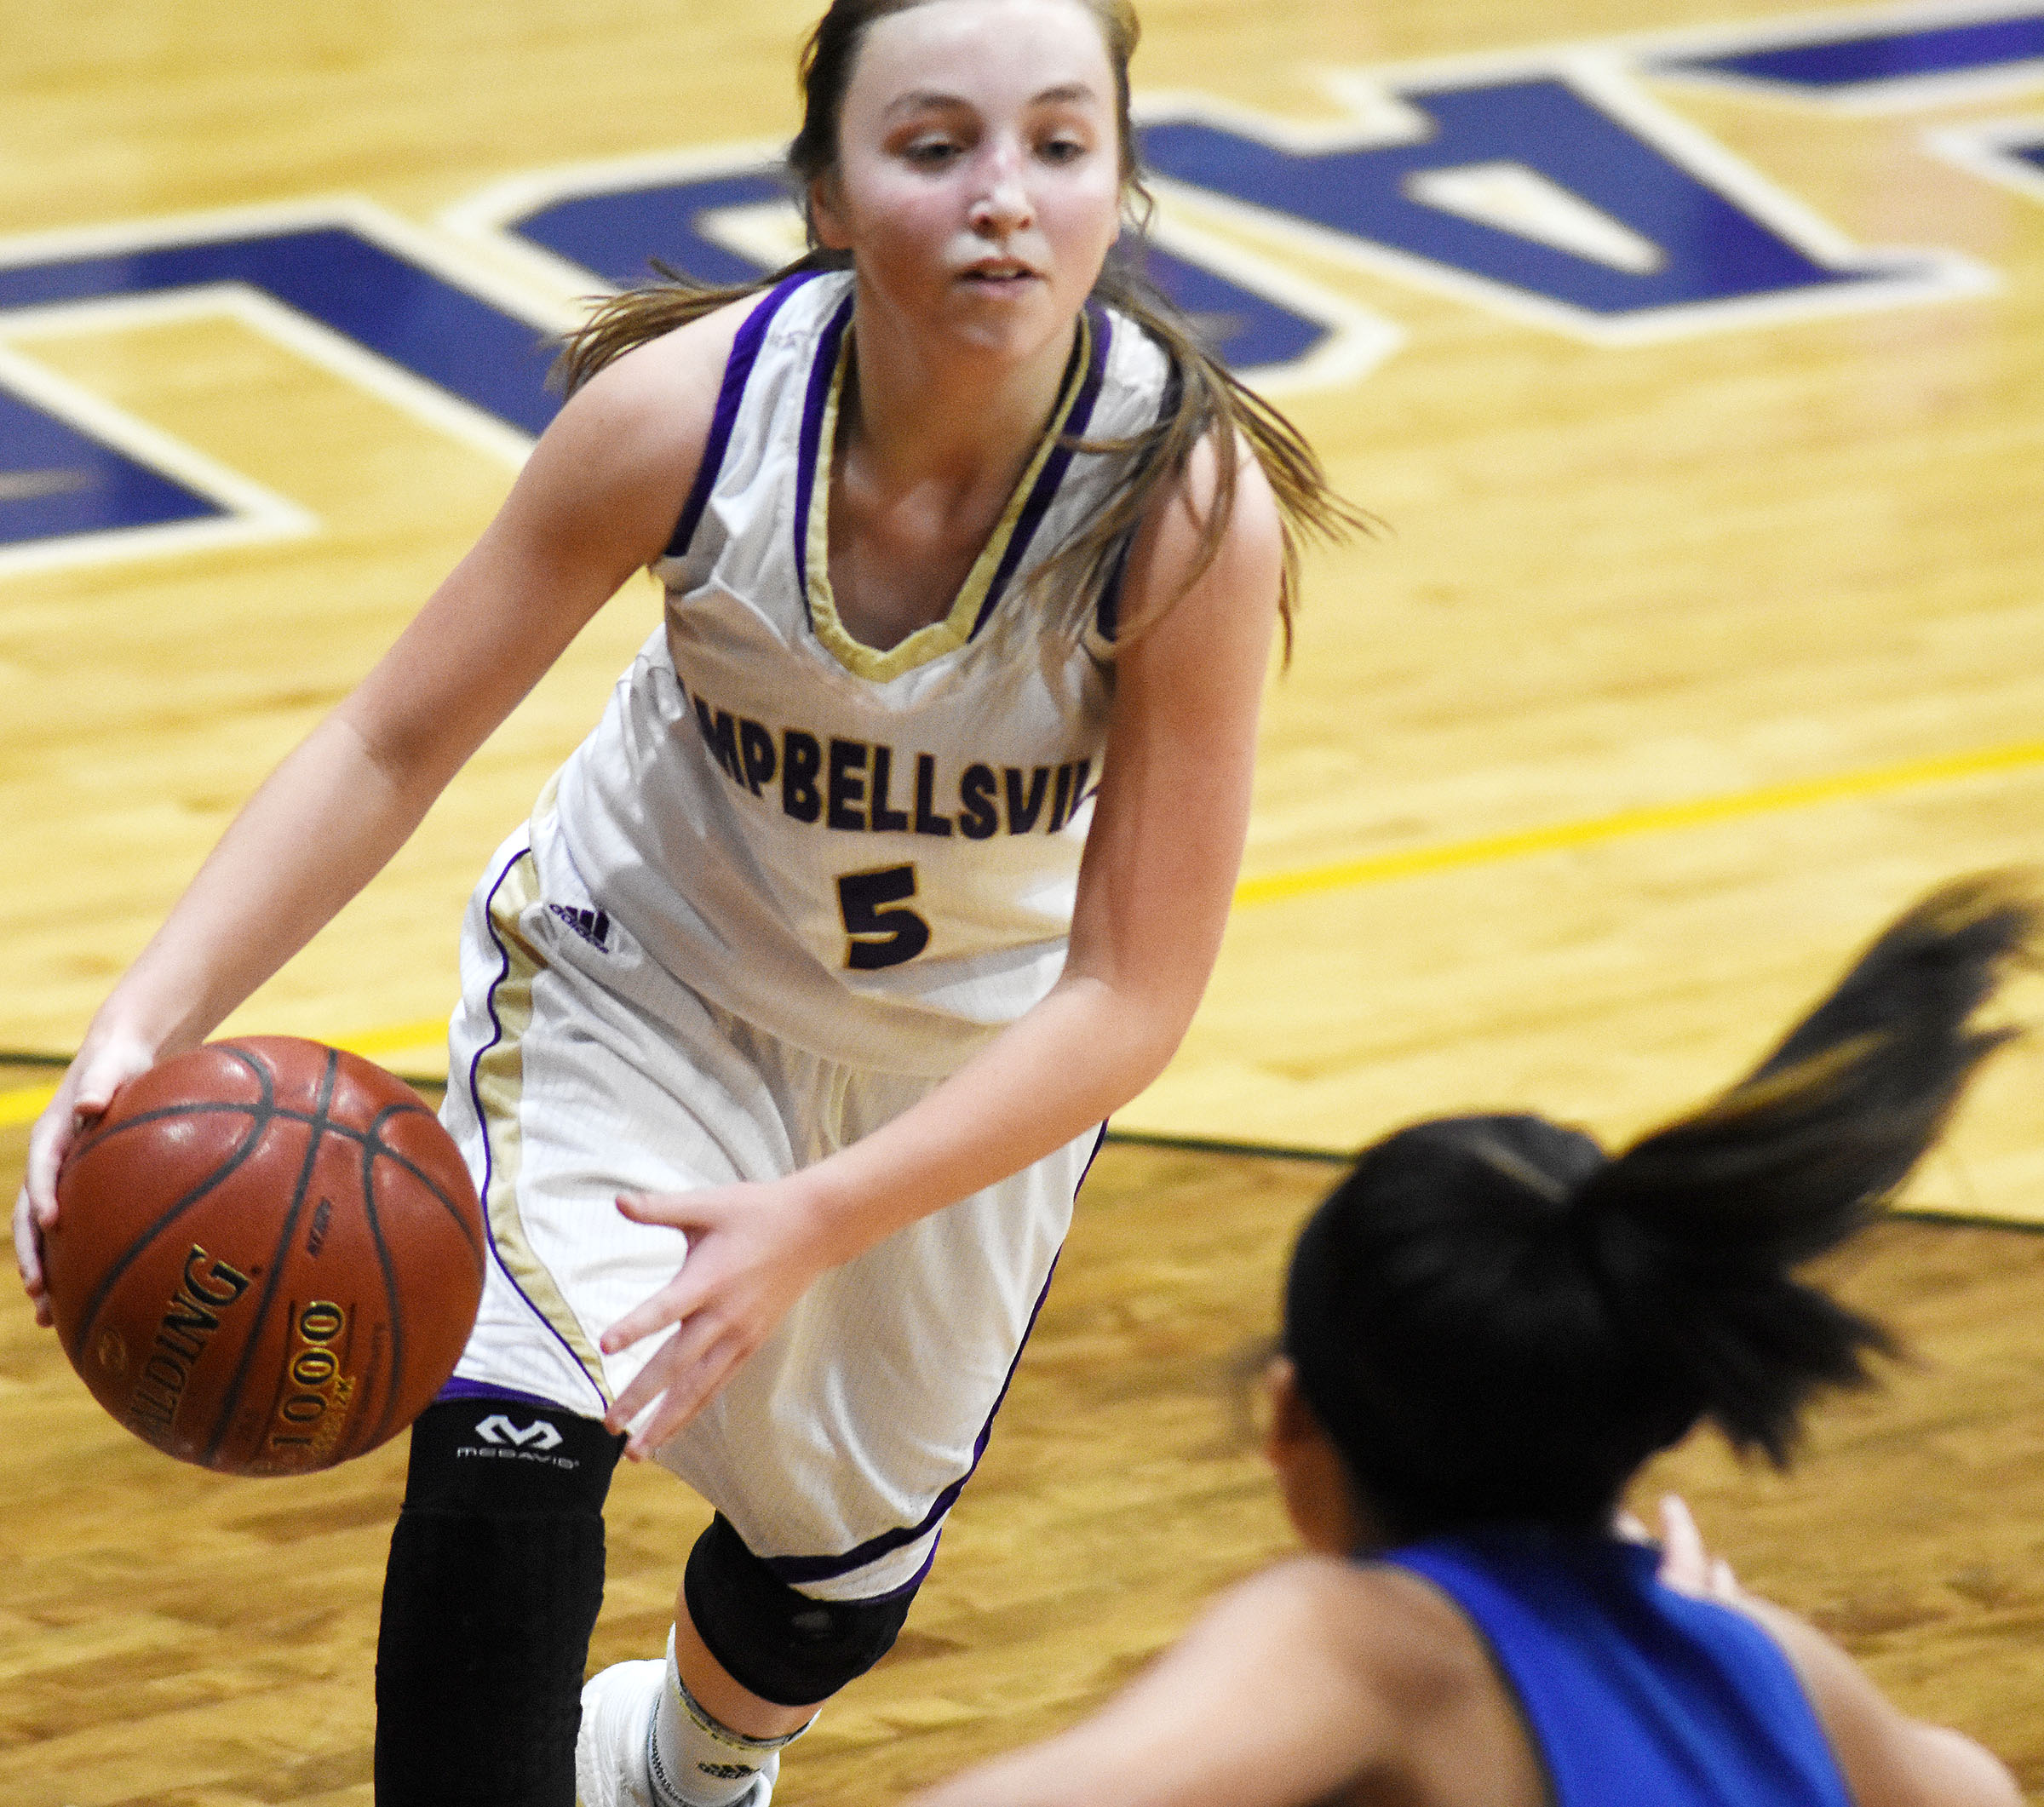 Campbellsville Middle School eighth-grader Lainey Watson drives the ball.